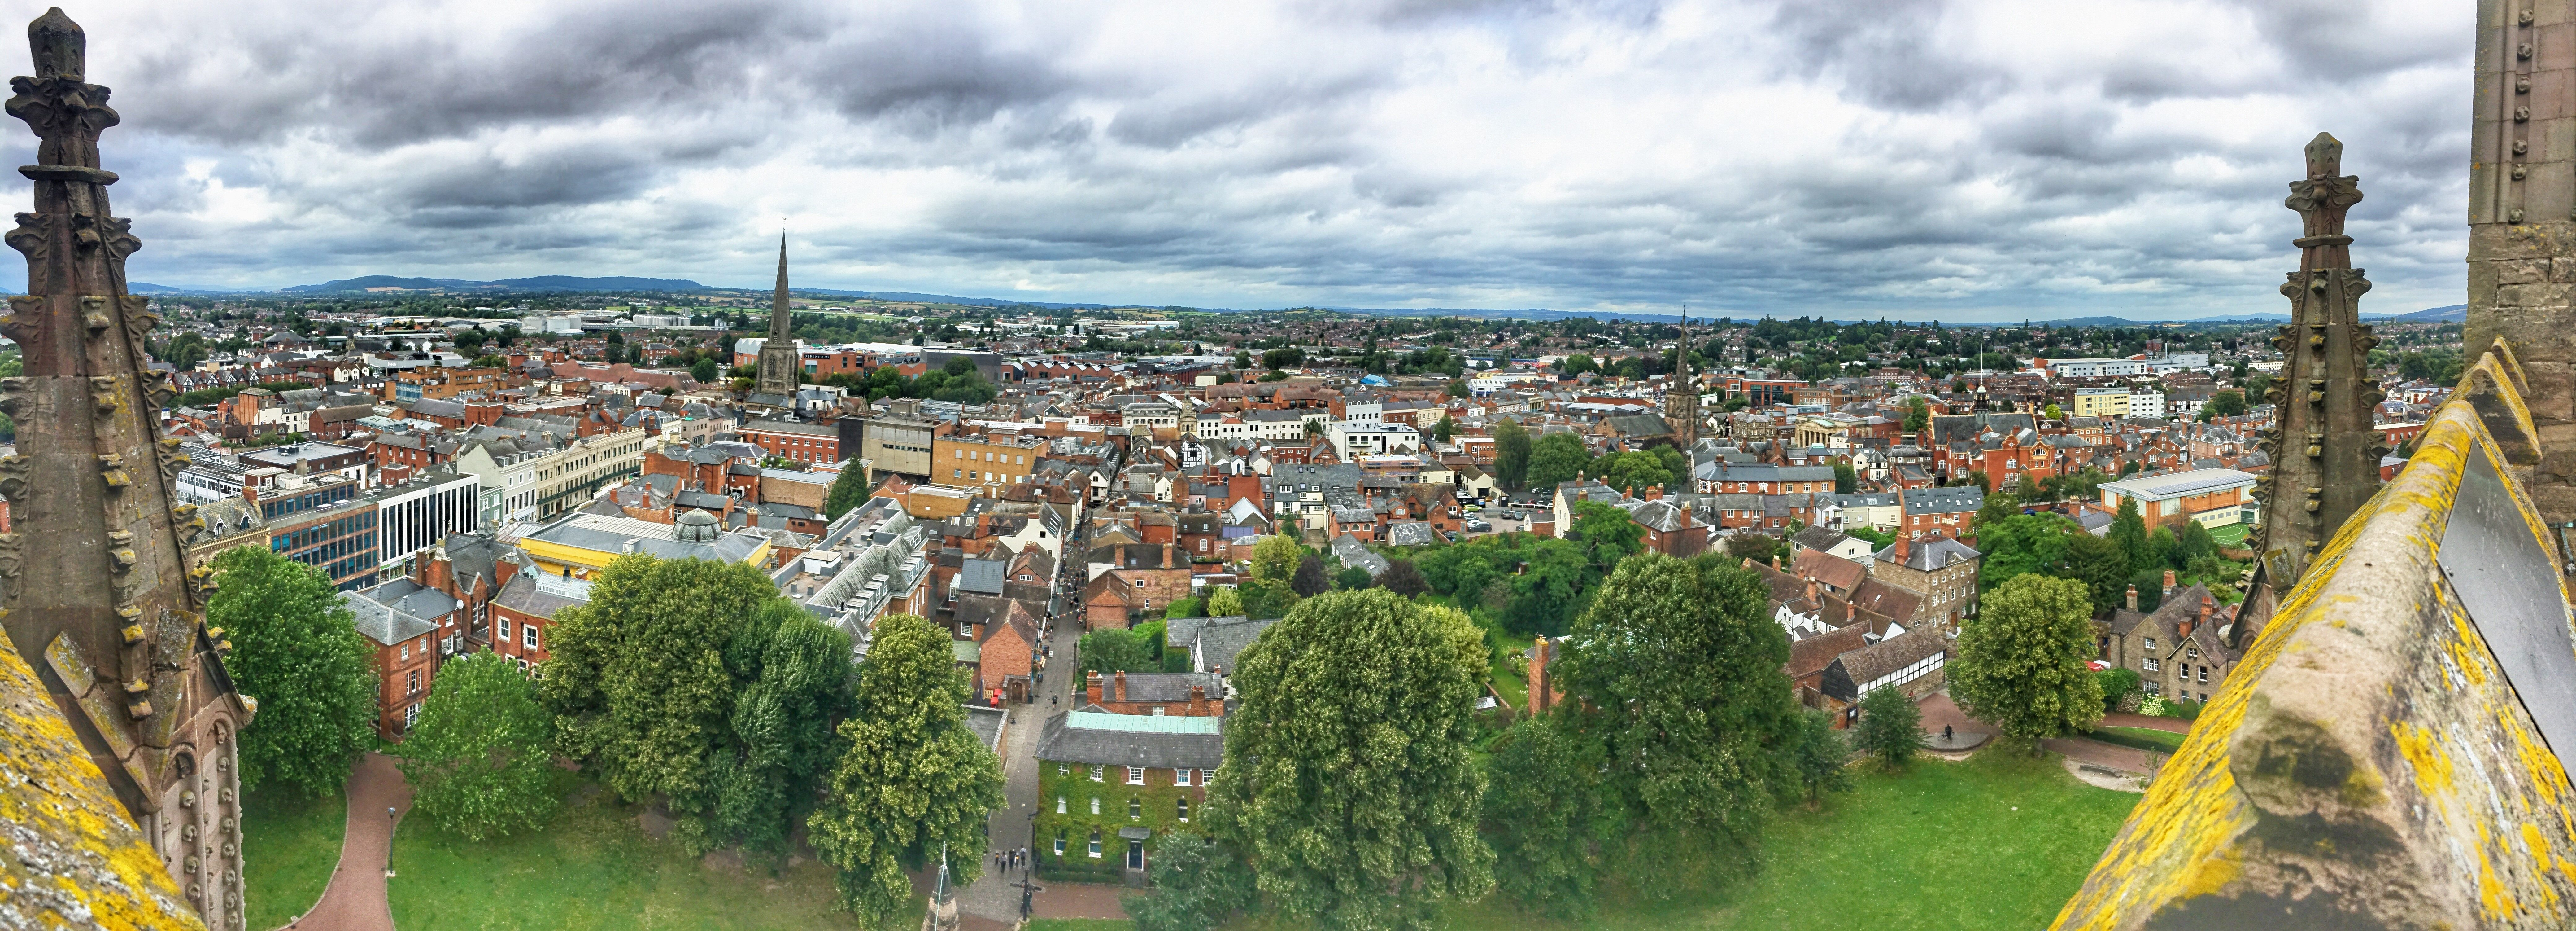 hereford city arial view